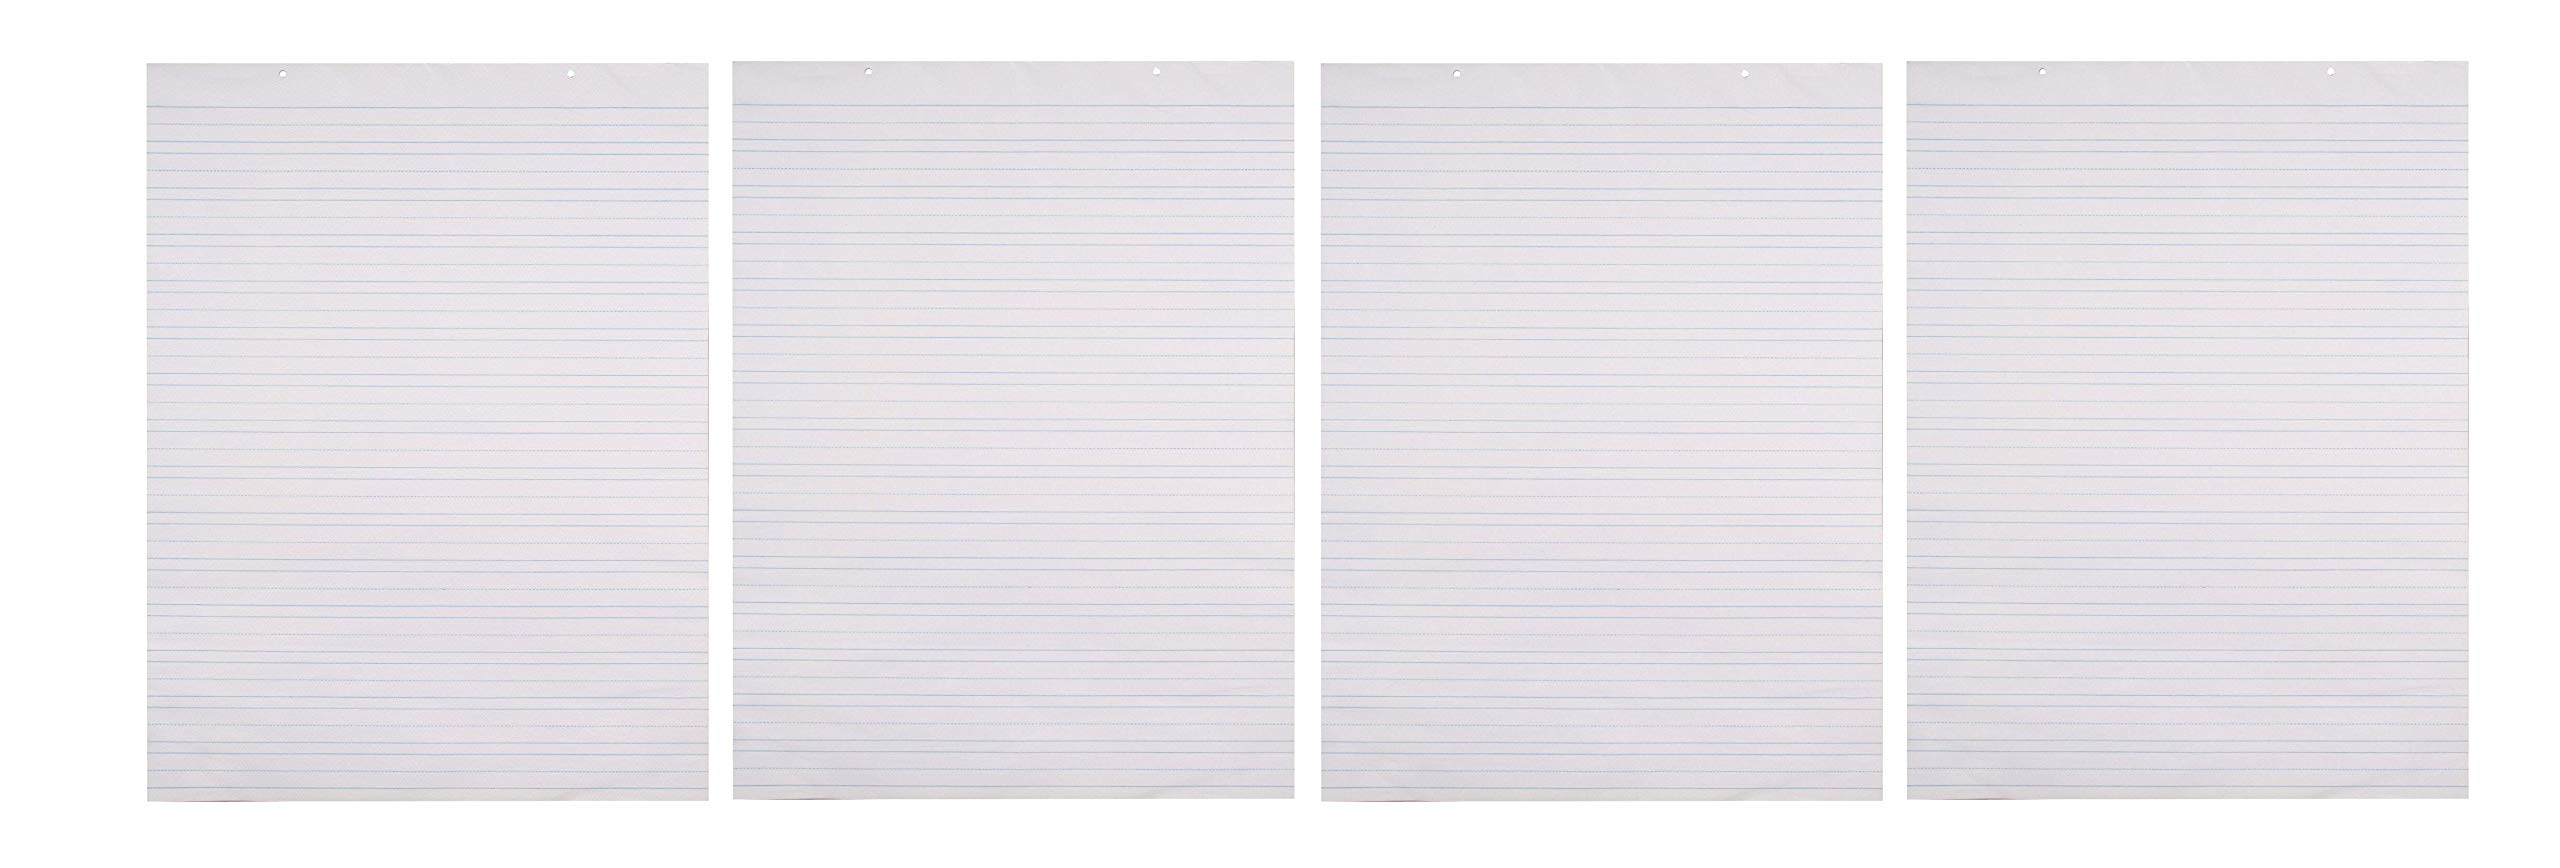 School Smart Primary Chart Paper, 24 x 32 Inches, Ruled 1-1/2 Inch with Dotted Midline, White, 70 Sheets (Fоur Paсk)